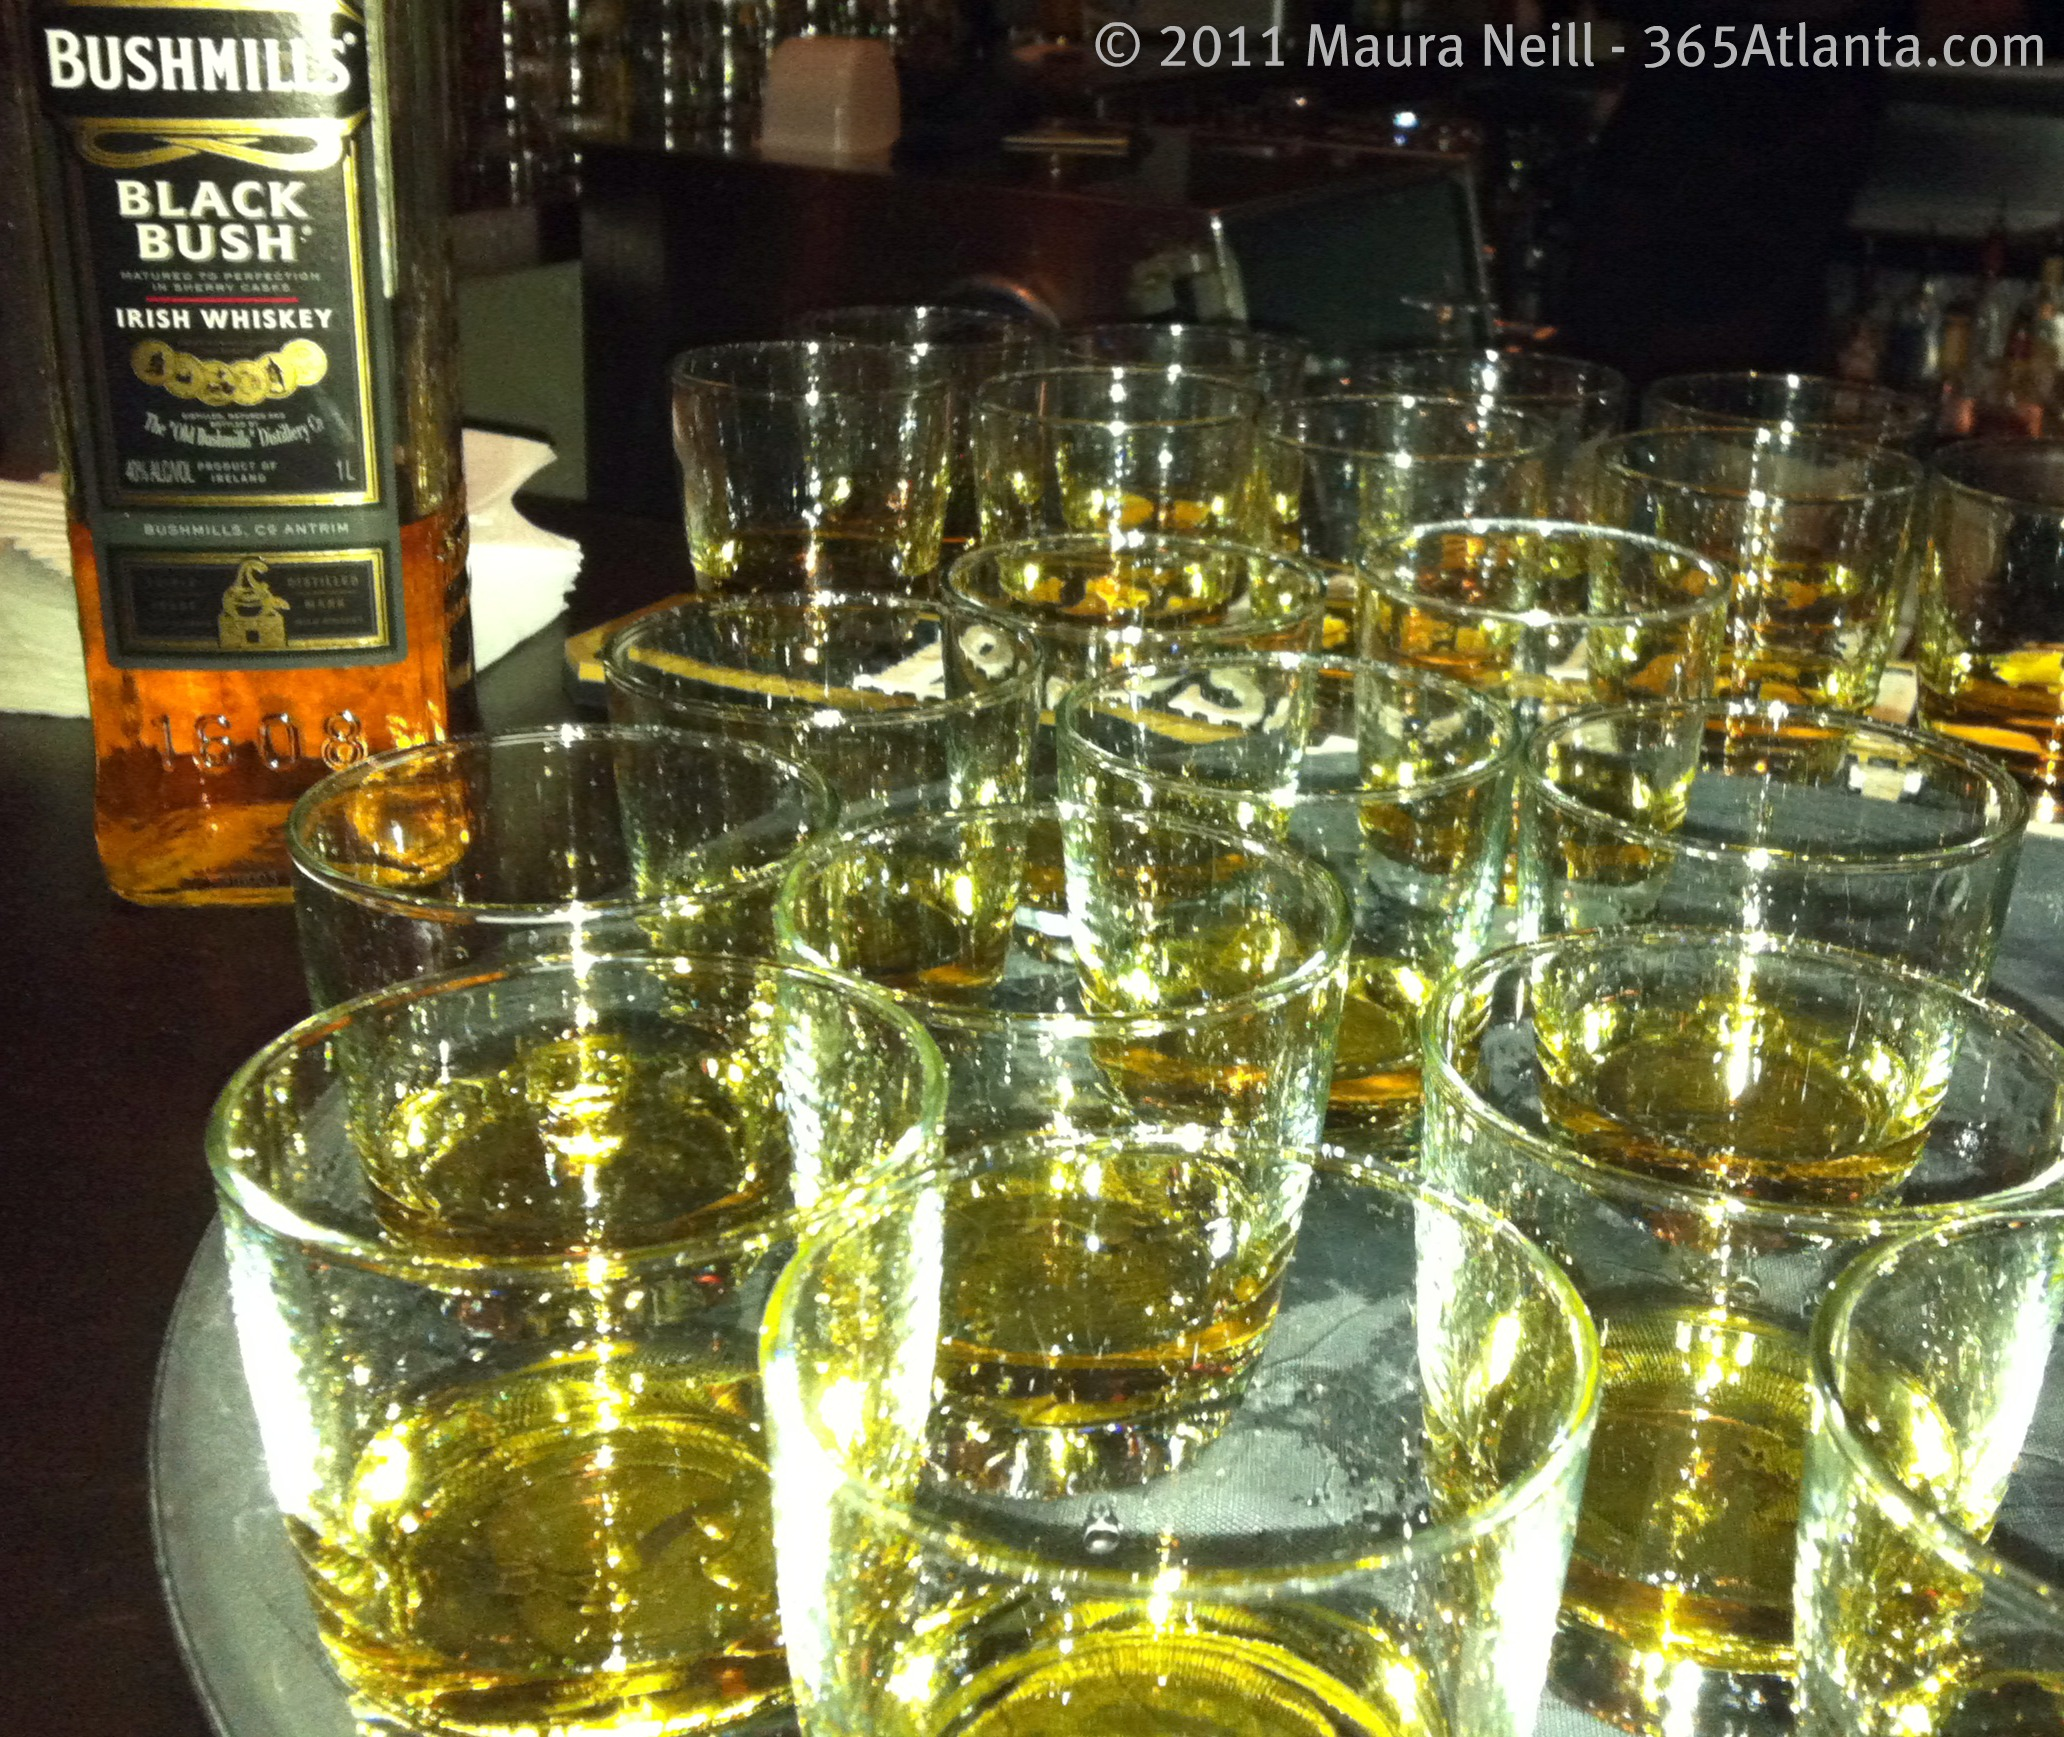 Whiskey Lovers, Celebrate St. Paddy's Day Early with a Bushmills Whiskey Dinner at Fadó Tonight! Tuesday, March 13, 2012